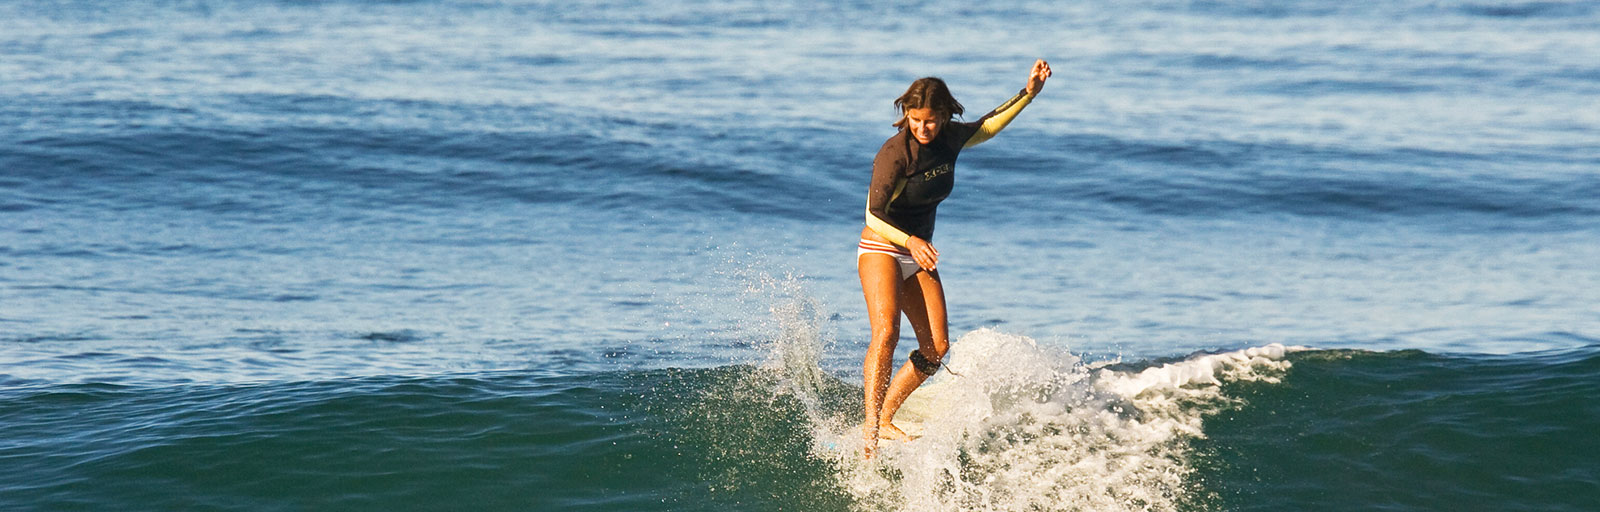 Surfing on a Yoga Retreat in Mexico: Yoga & Surf